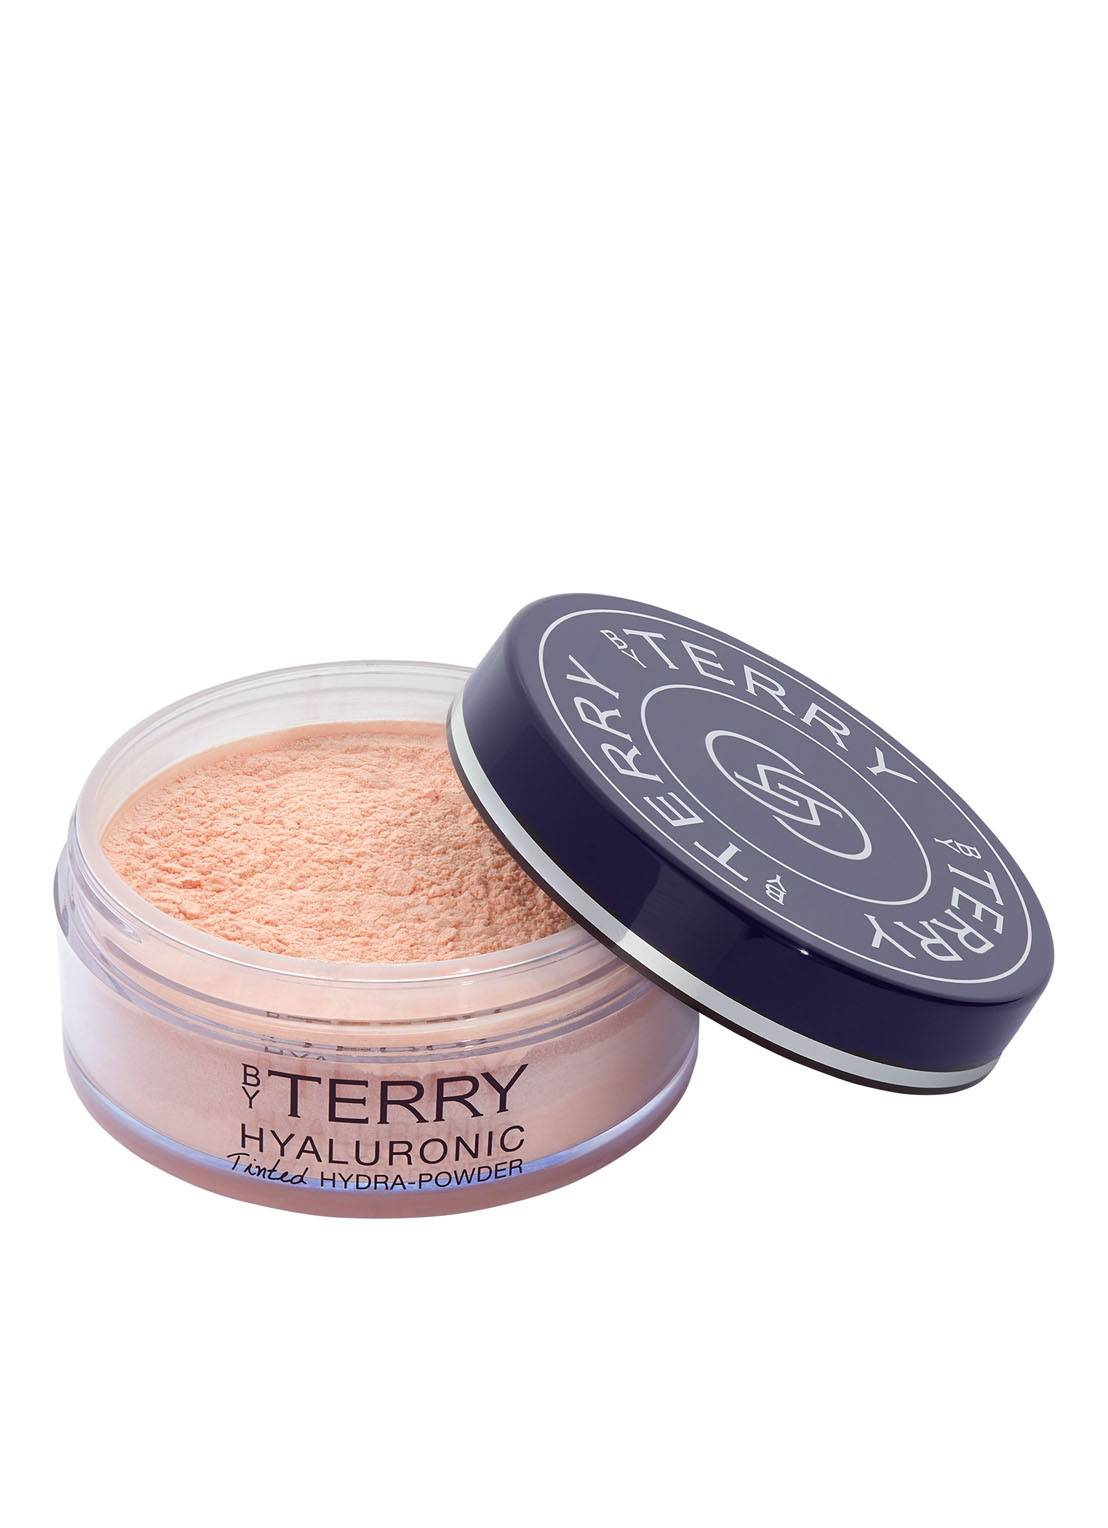 By Terry Hyaluronic Tinted Hydra Powder - poudre libre - N200 Natural